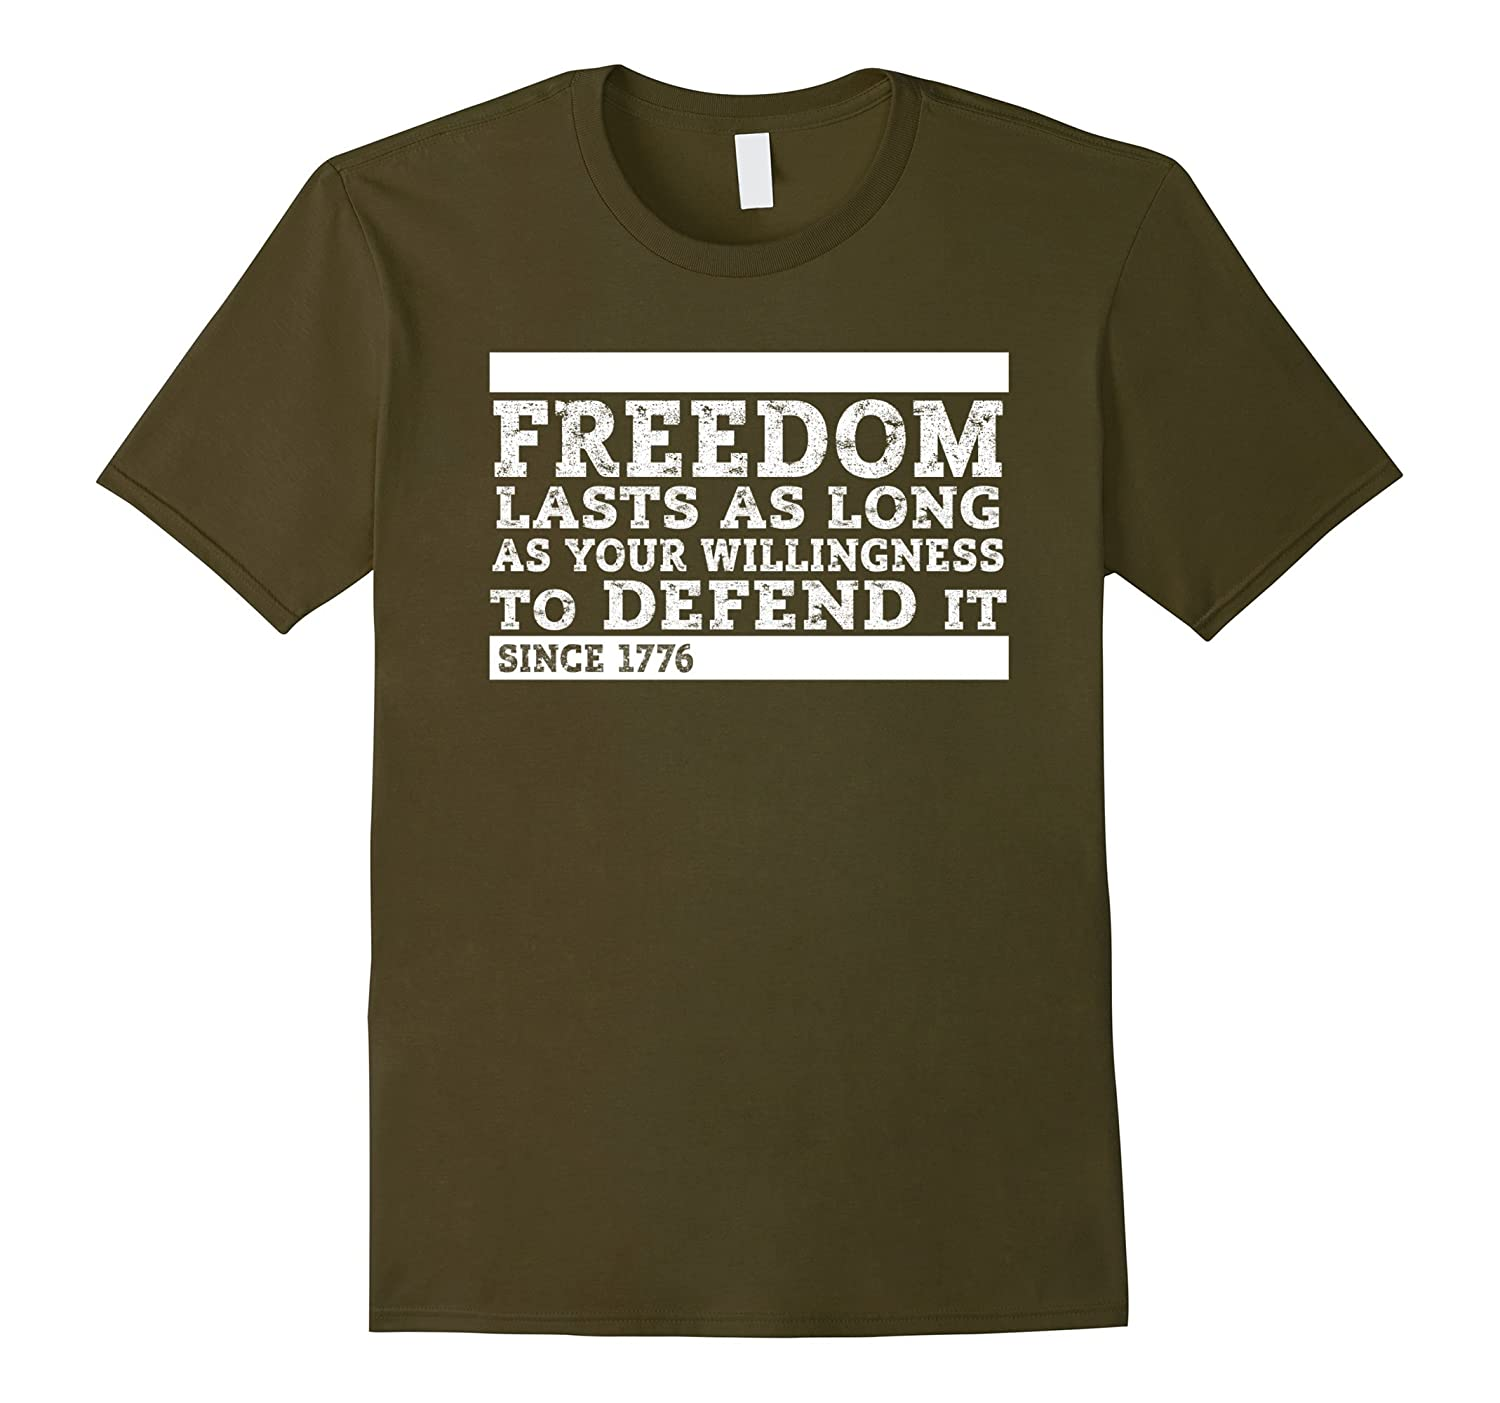 Freedom Lasts Willingness Defend It America Free 1776 Shirt-Vaci